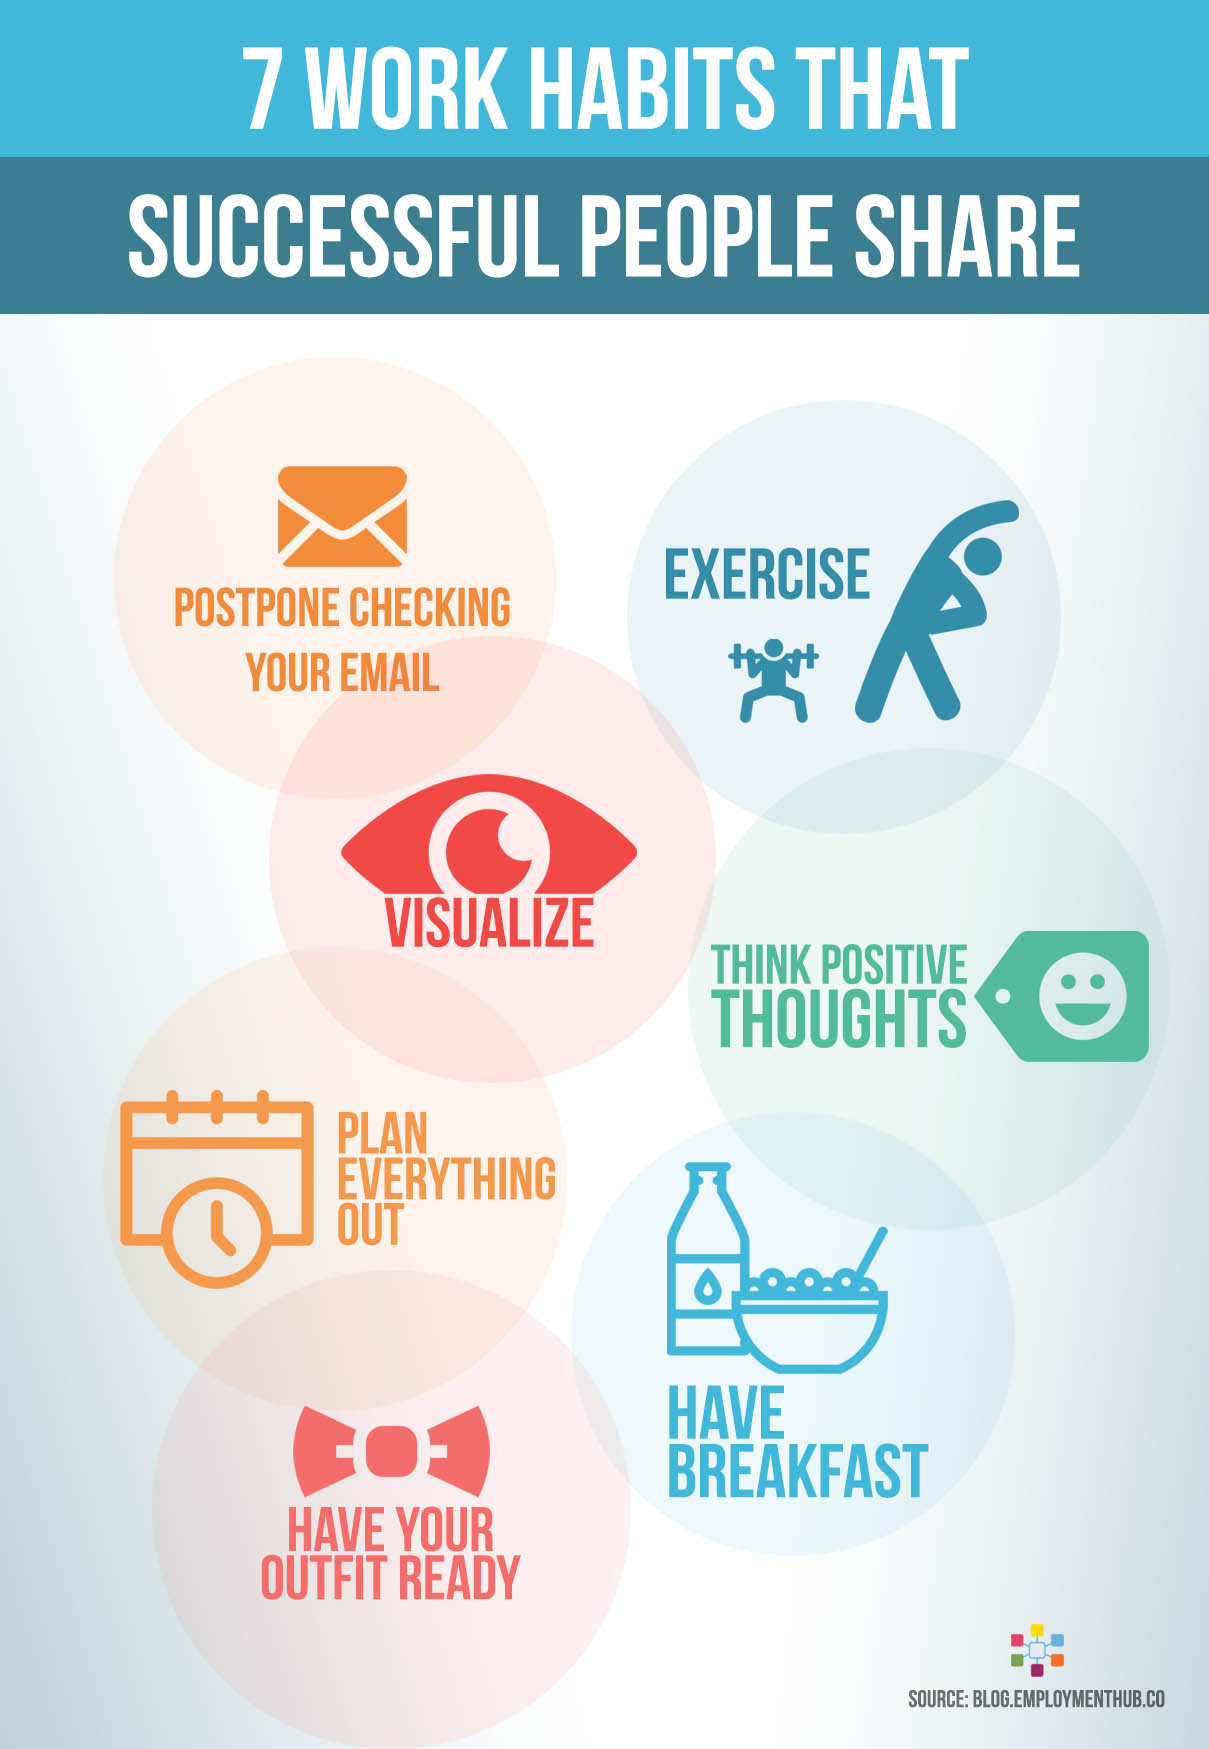 7 Work Habits That Successful People Share infographic